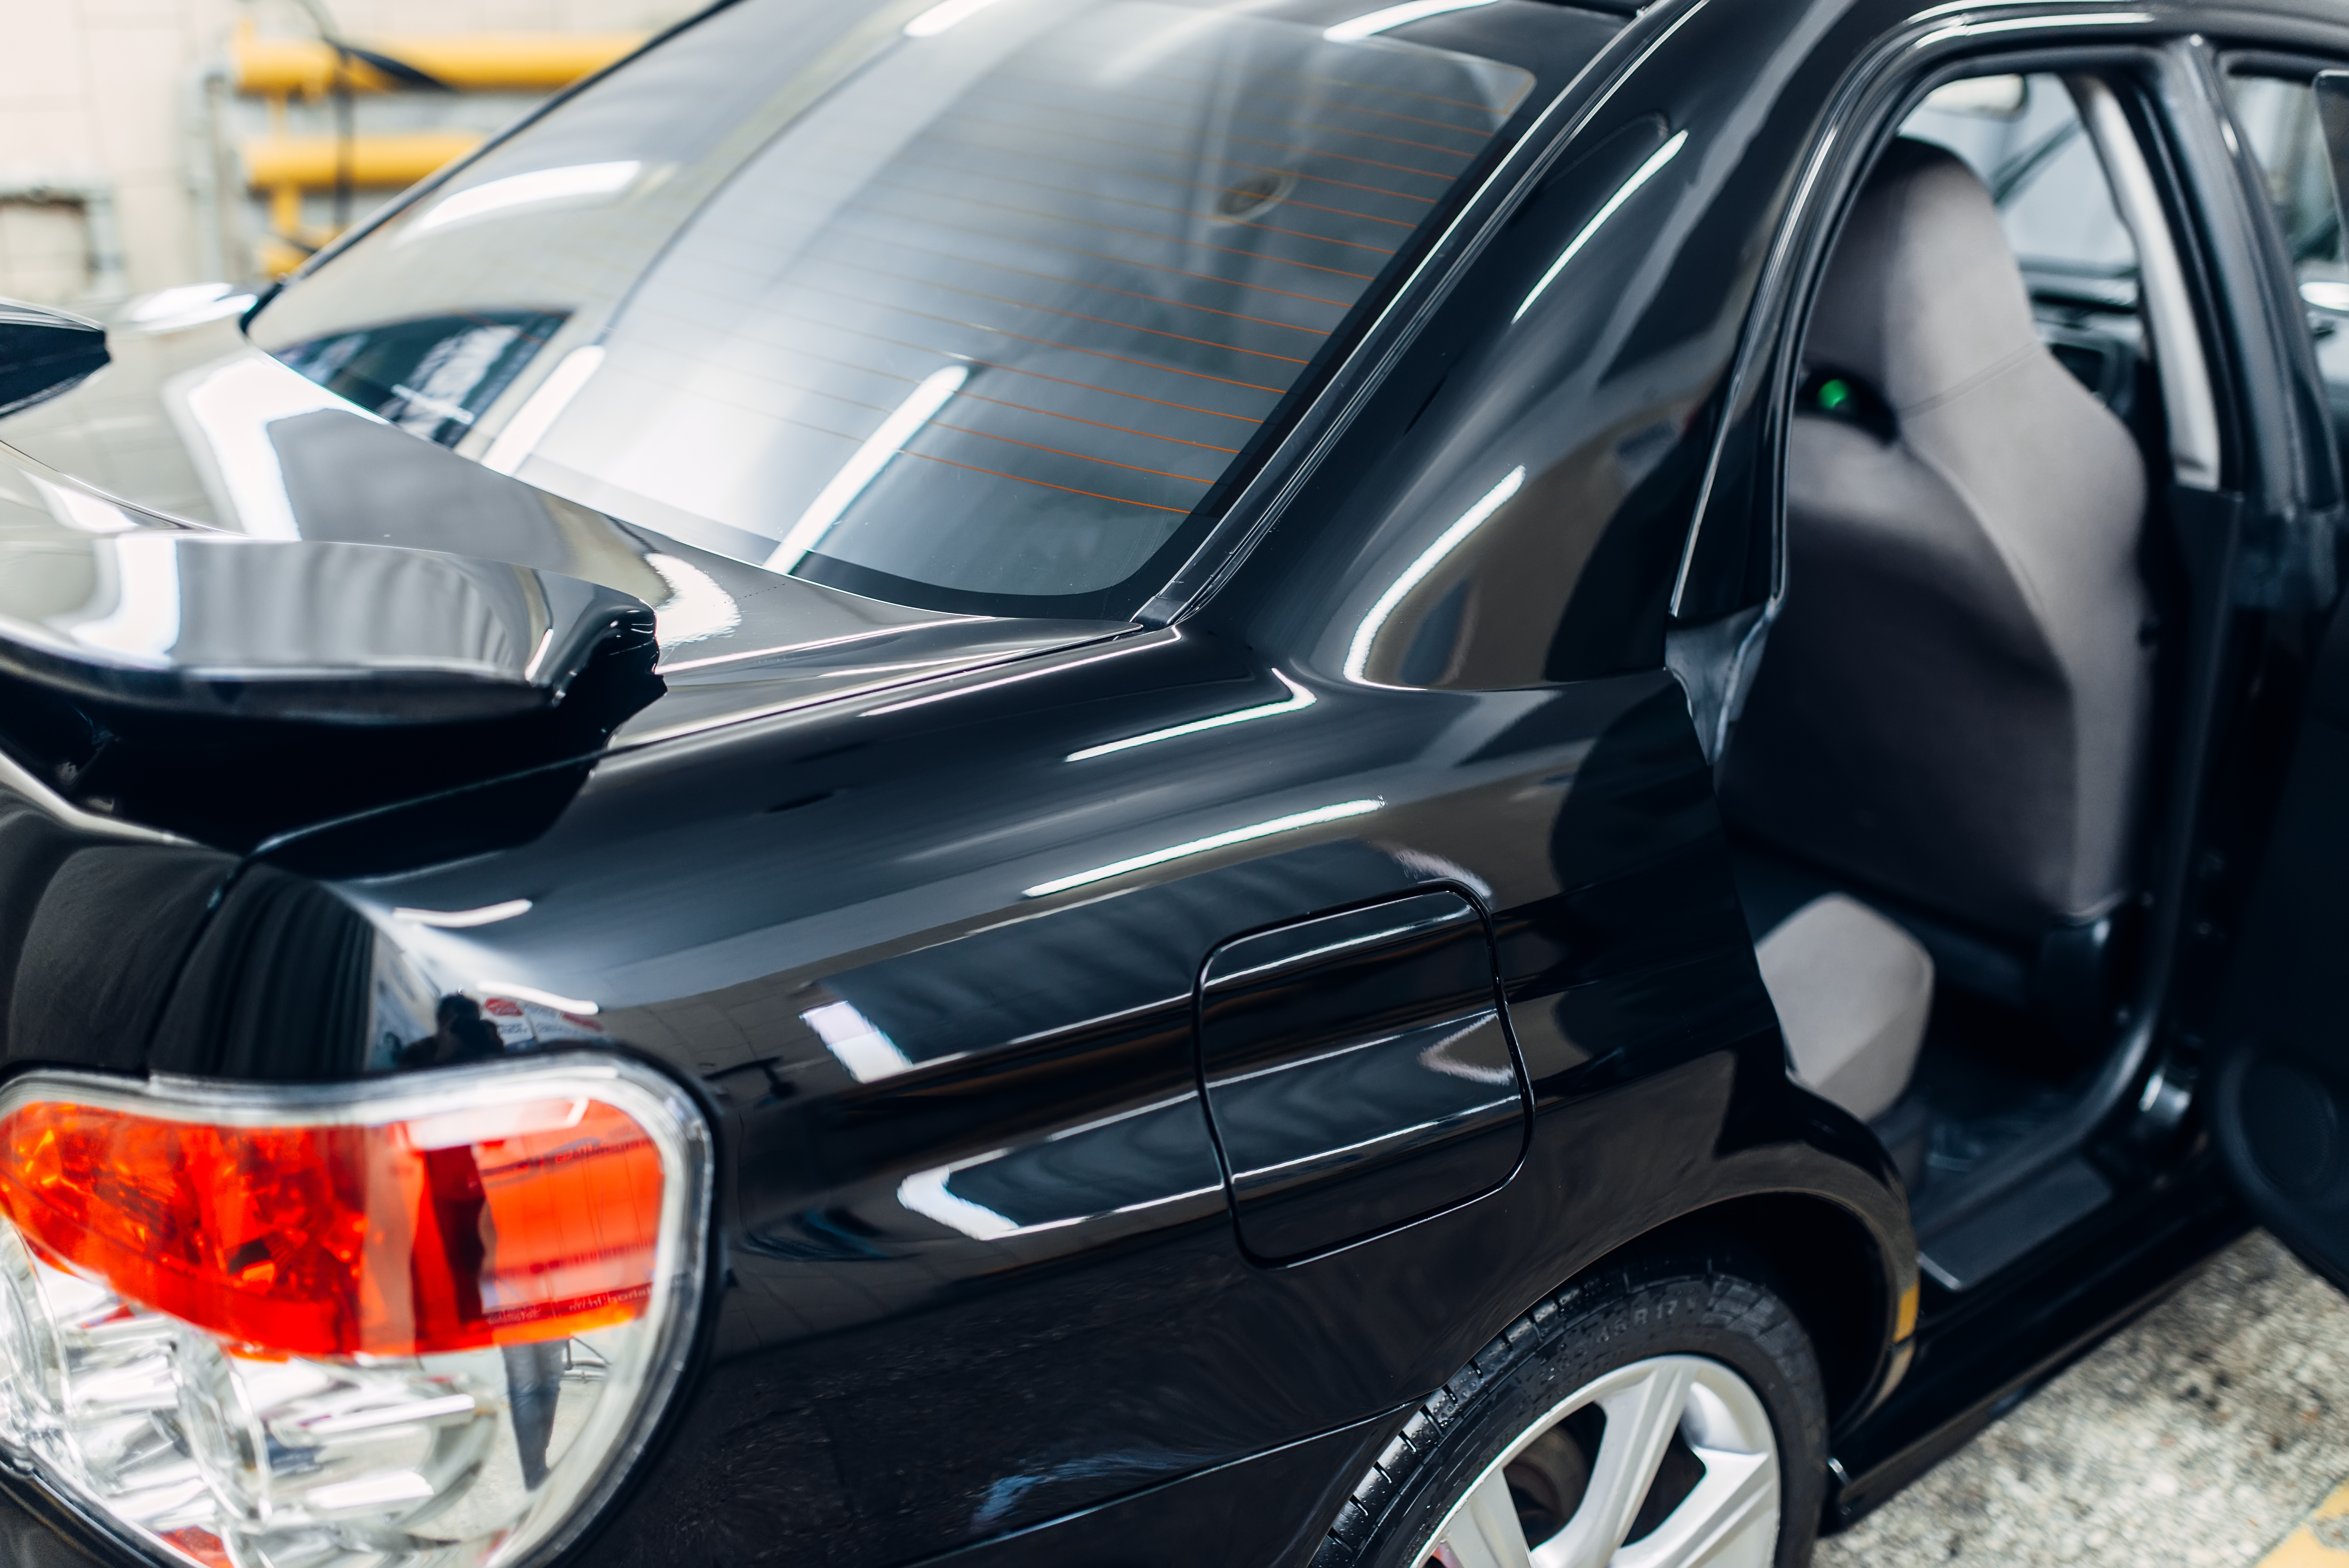 Carwash service, clean car with open doors after washing, nobody. Auto detailing preparation,